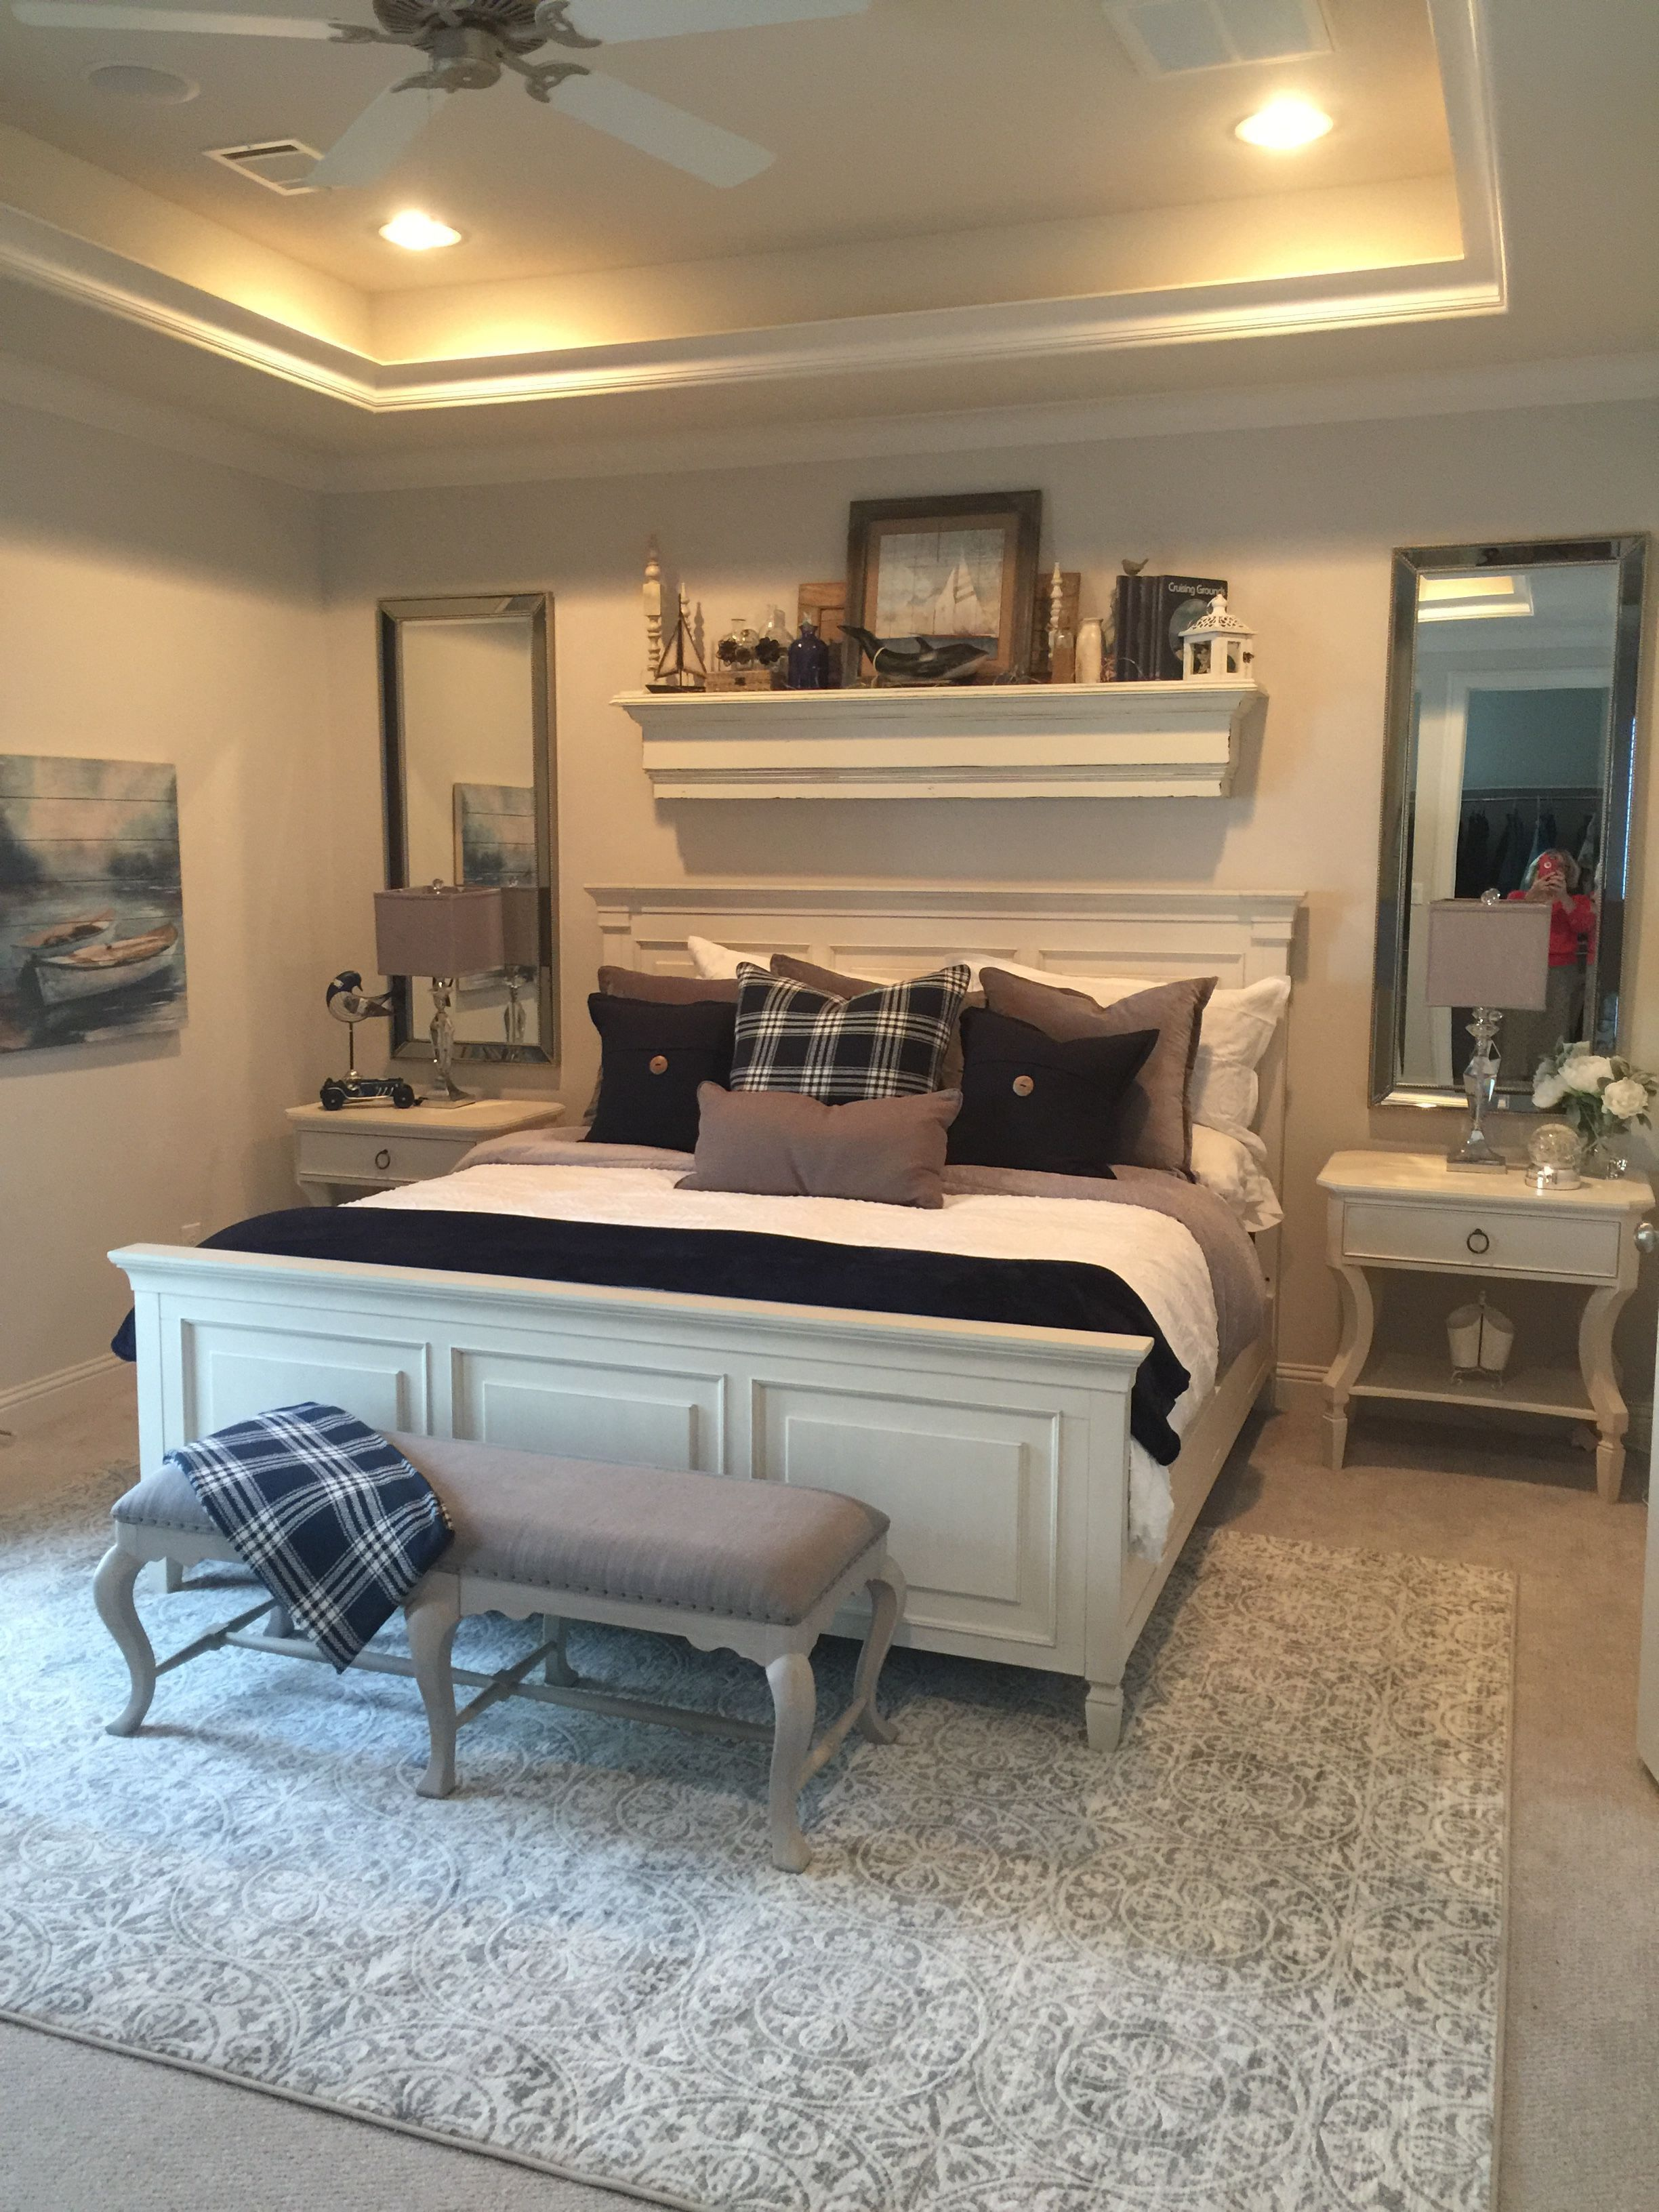 Coastal Farmhouse Glam Master Bedroom This Was A Fun Project Infusing Colors Of N Farmhouse Style Master Bedroom Coastal Master Bedroom Master Bedrooms Decor